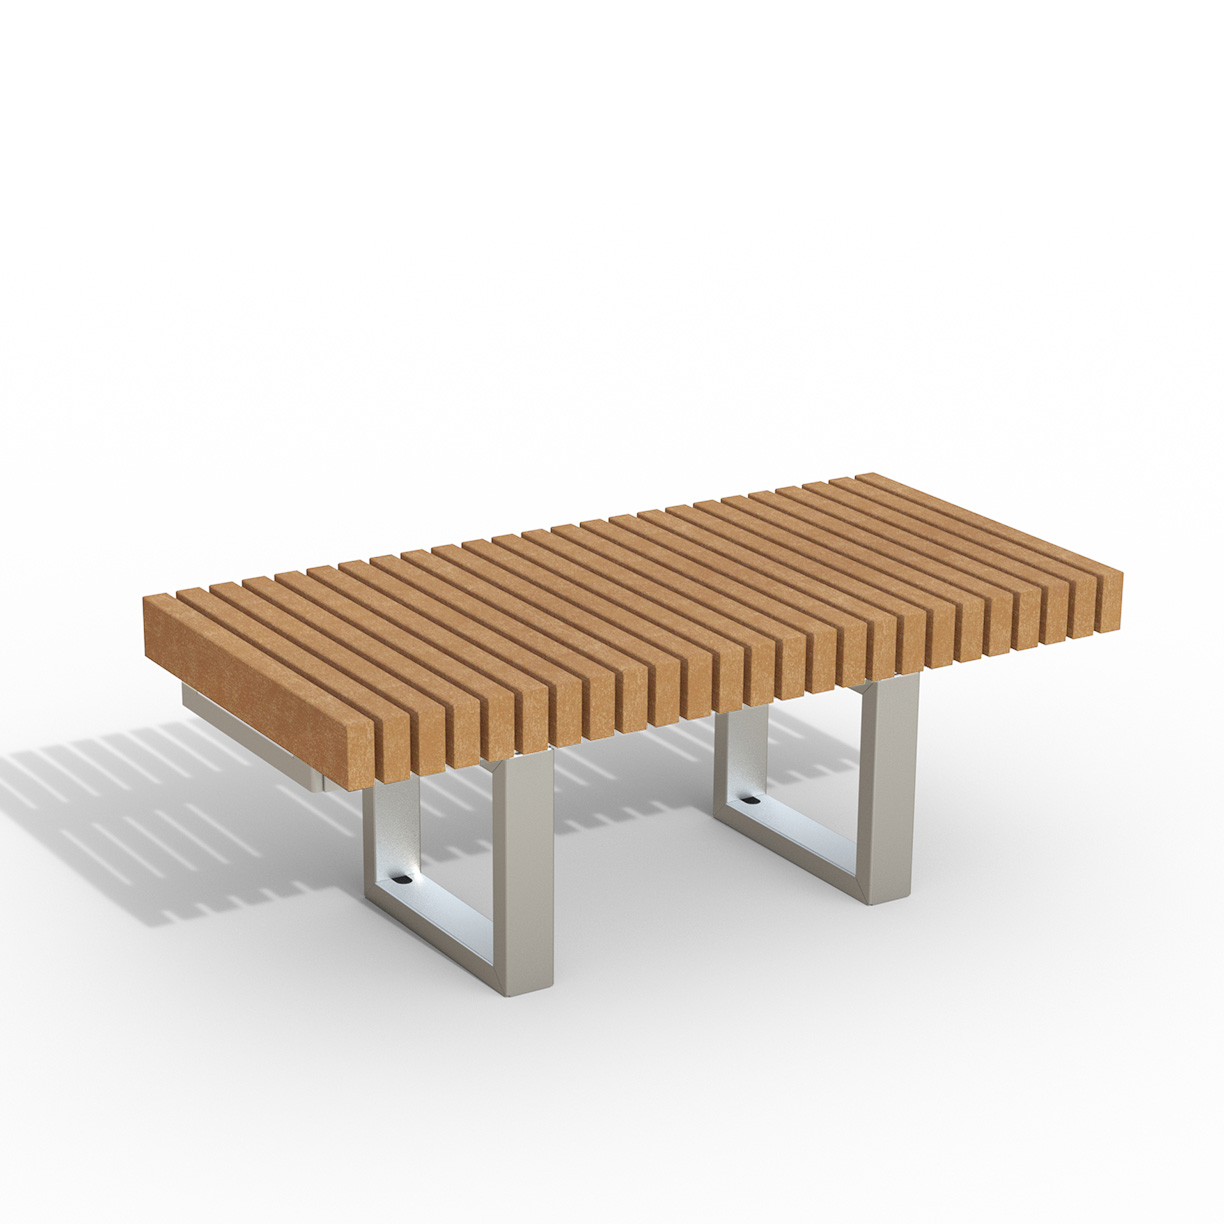 INF24L4R  Infinity Collection 2' x 4' Linear Recycled Plastic Lumber Bench